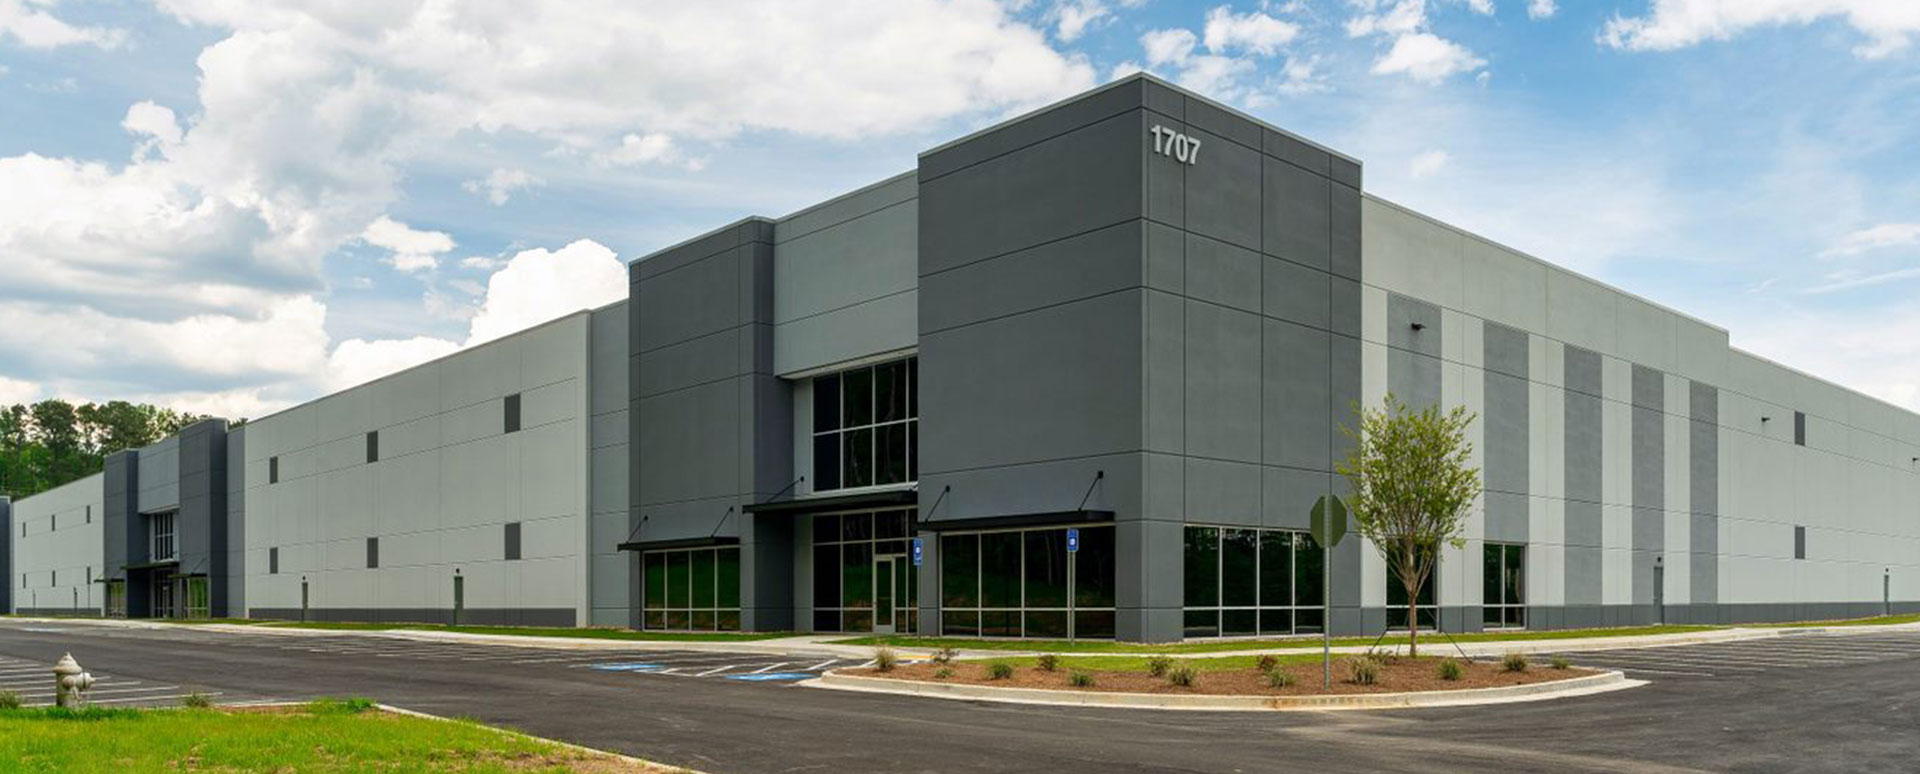 I20 Logistics - Lithia Springs, GA 1